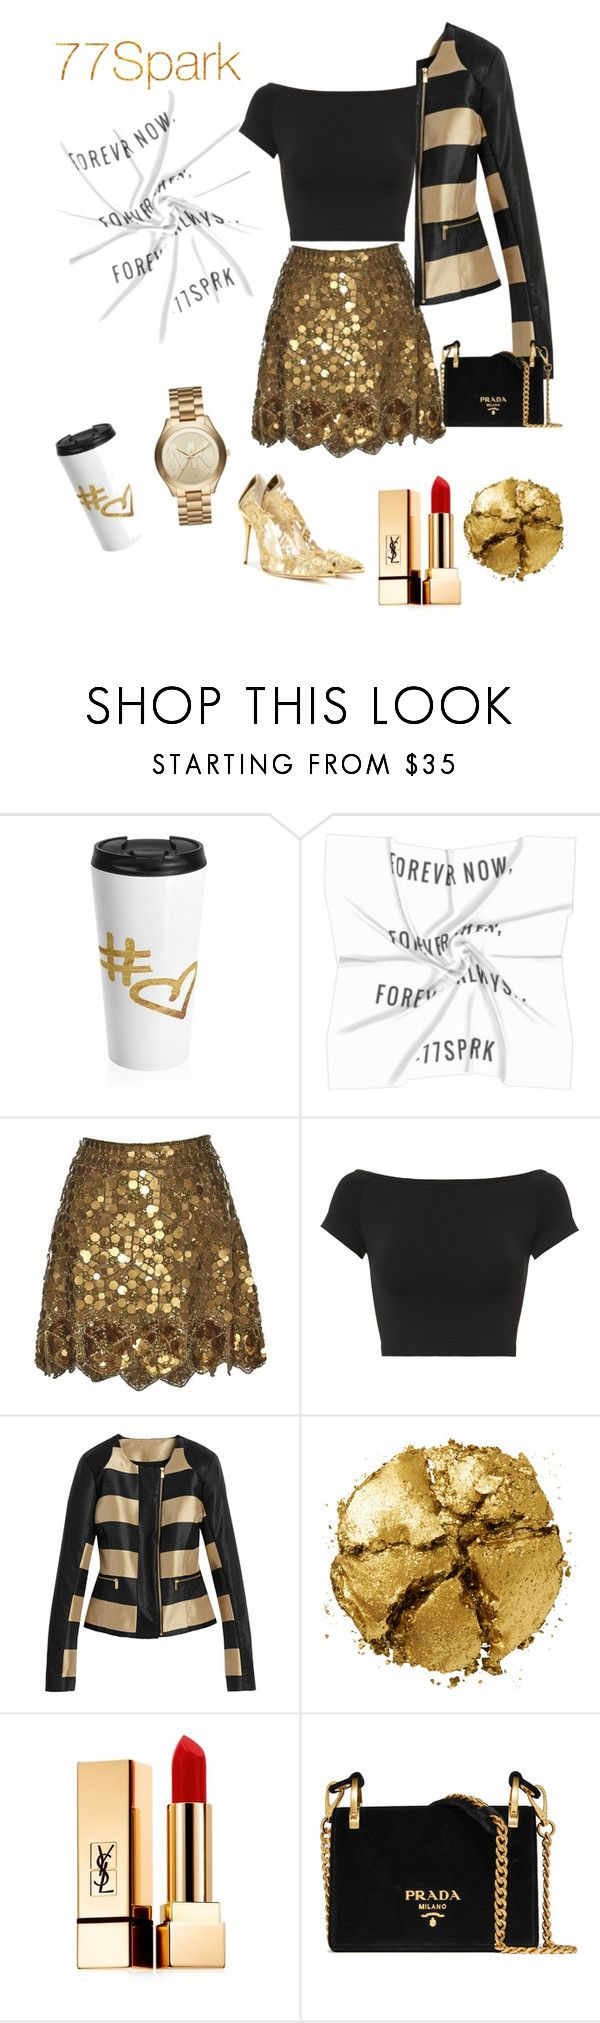 """Trending: Cute Scarselli by 7/7 Spark"" by elysab ❤ liked on Polyvore featuring Matthew Williamson, Helmut Lang, Oscar de la Renta, Pat McGrath, Yves Saint Laurent, Prada and Michael Kors"